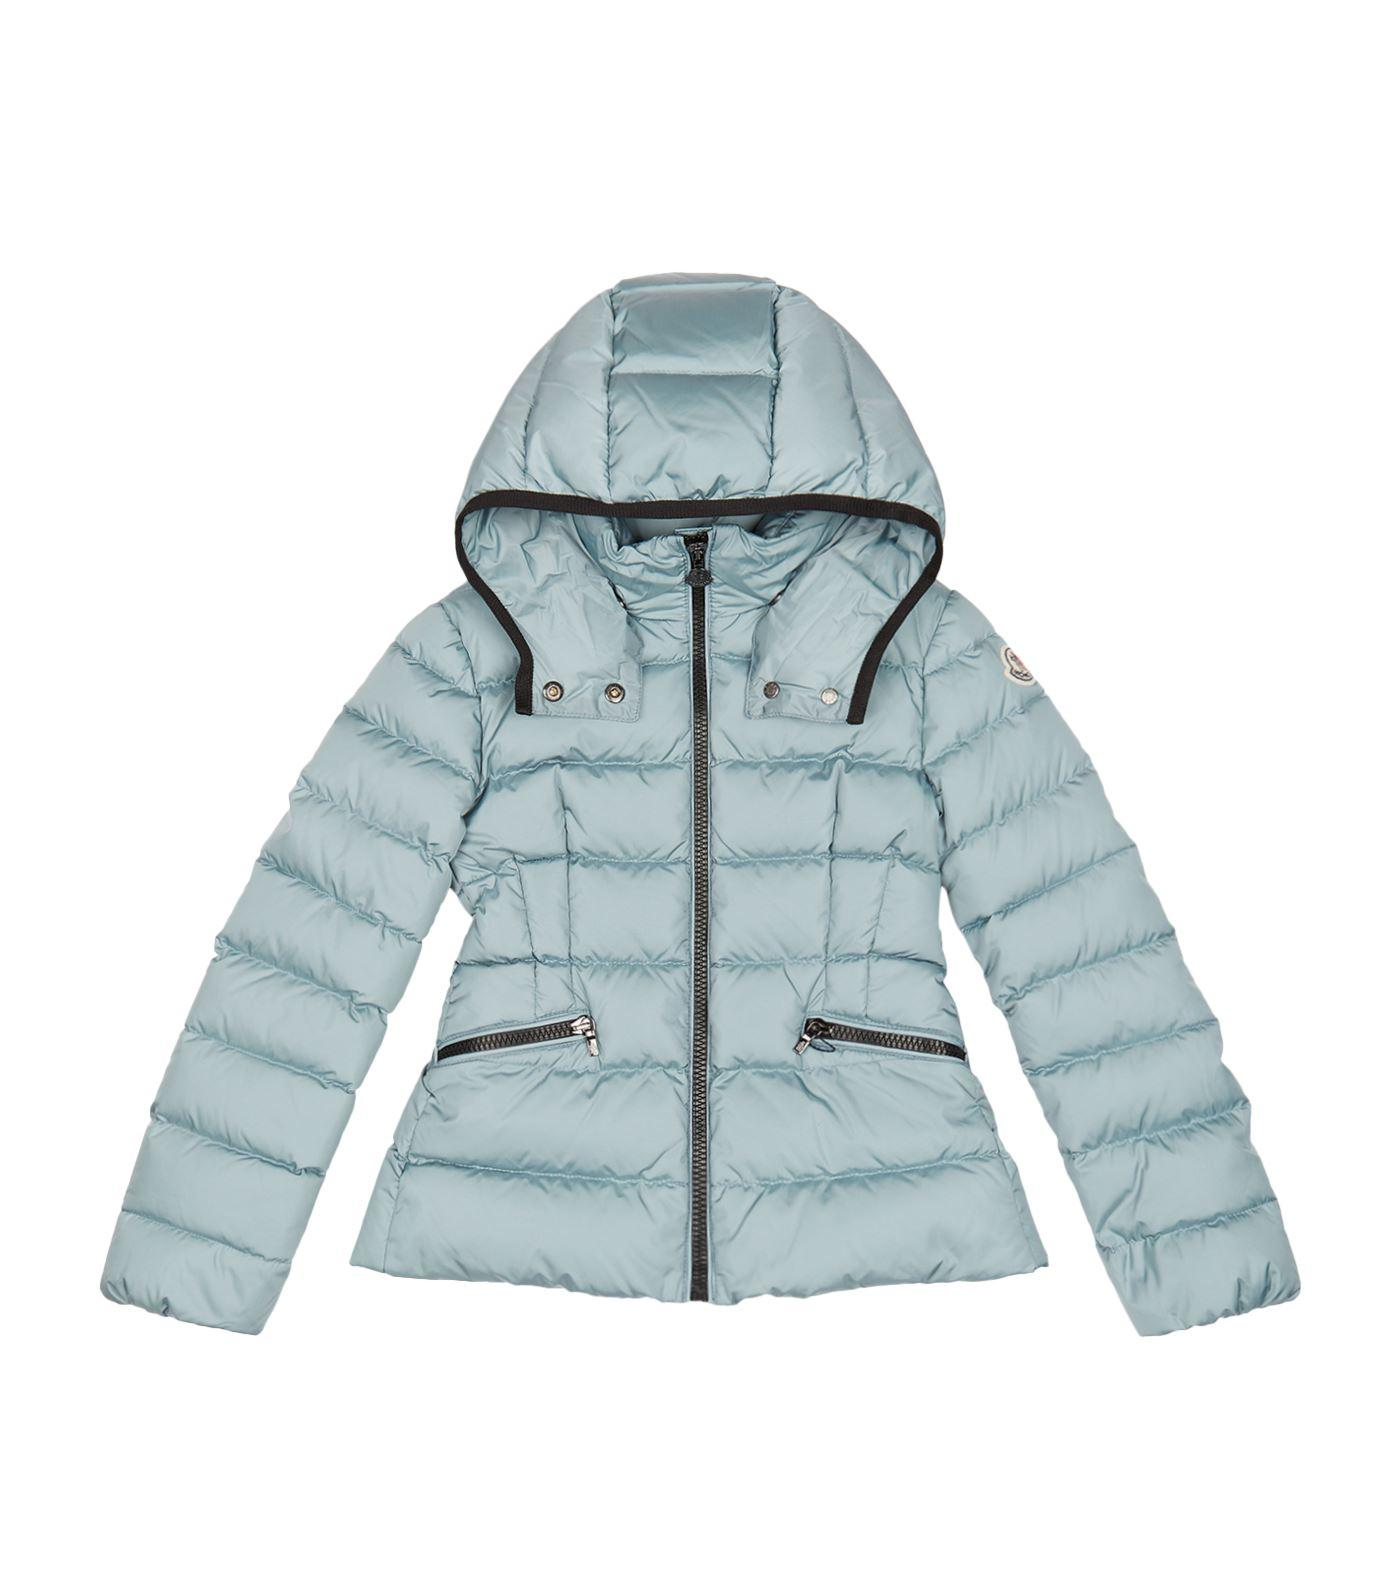 Moncler Saby Hooded Jacket In Blue